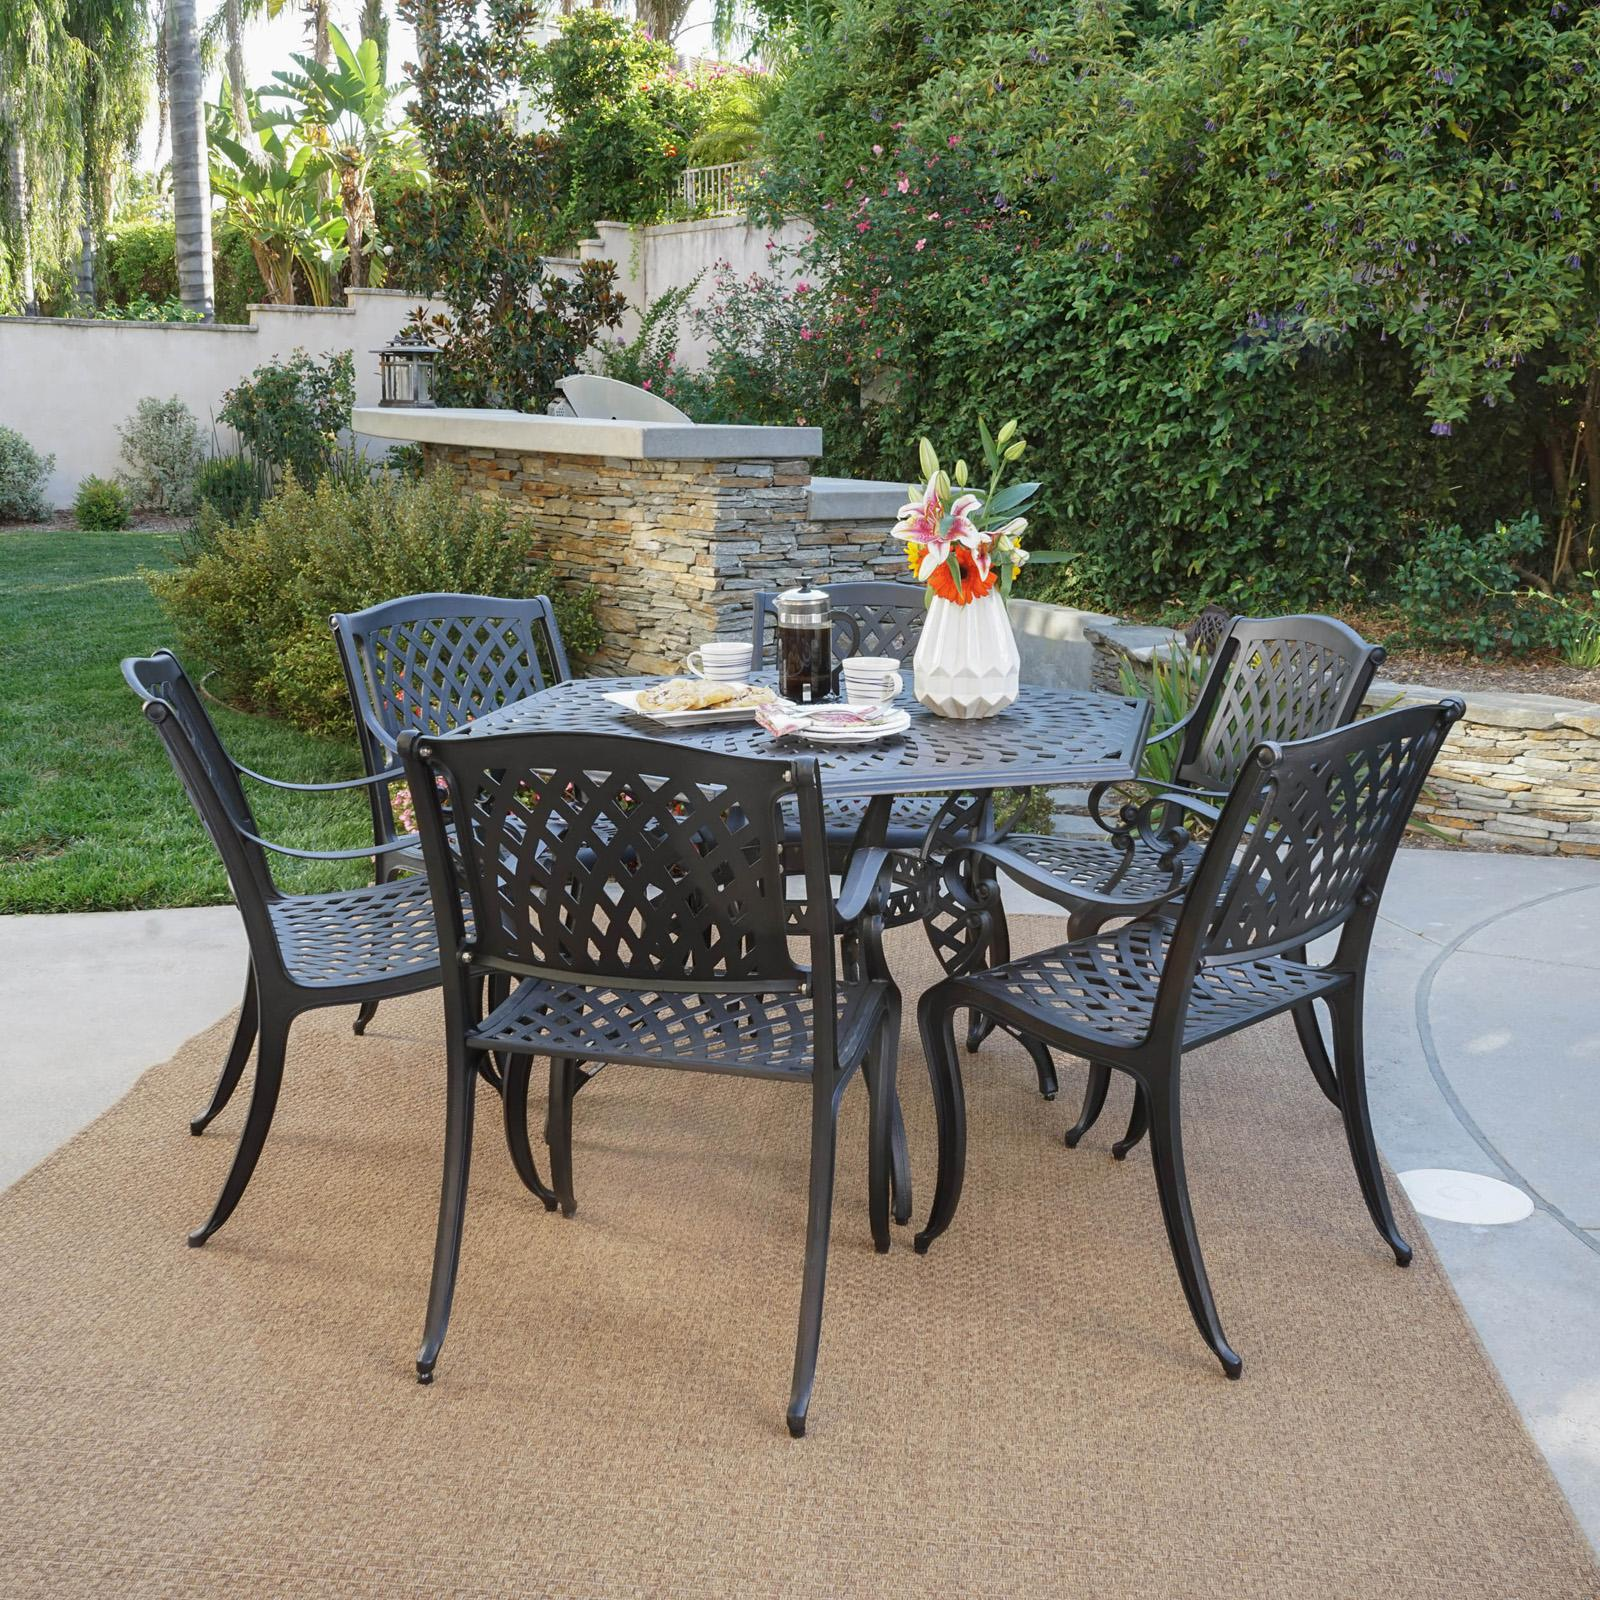 Best Selling Home Spencer Aluminum 7 Piece Hexagon Patio